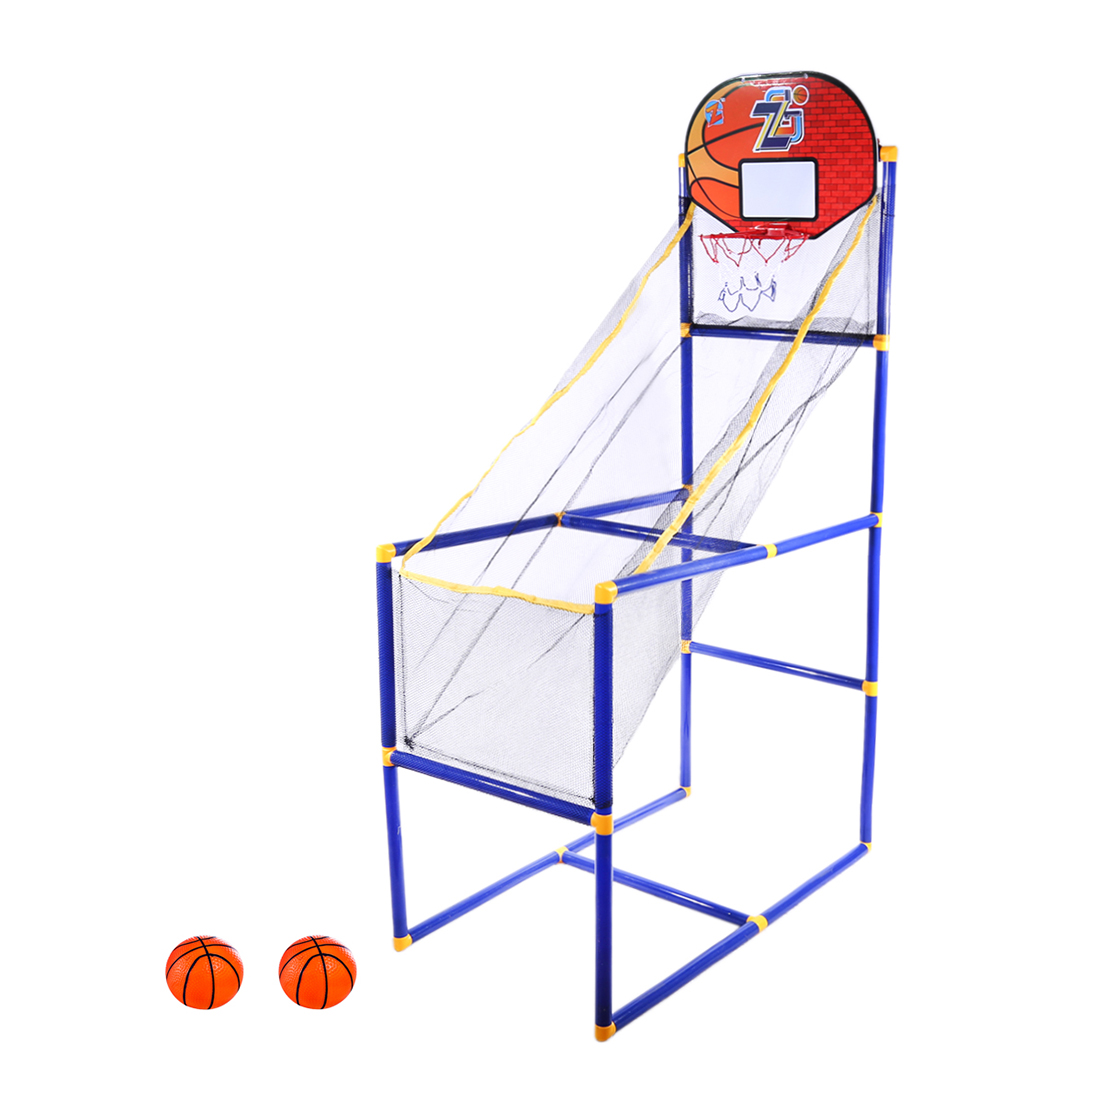 Surwish 125cm Children Sports Equipment Indoor Outdoor Basketball Shooting Toy for Kids Training Exercise ZG270 29